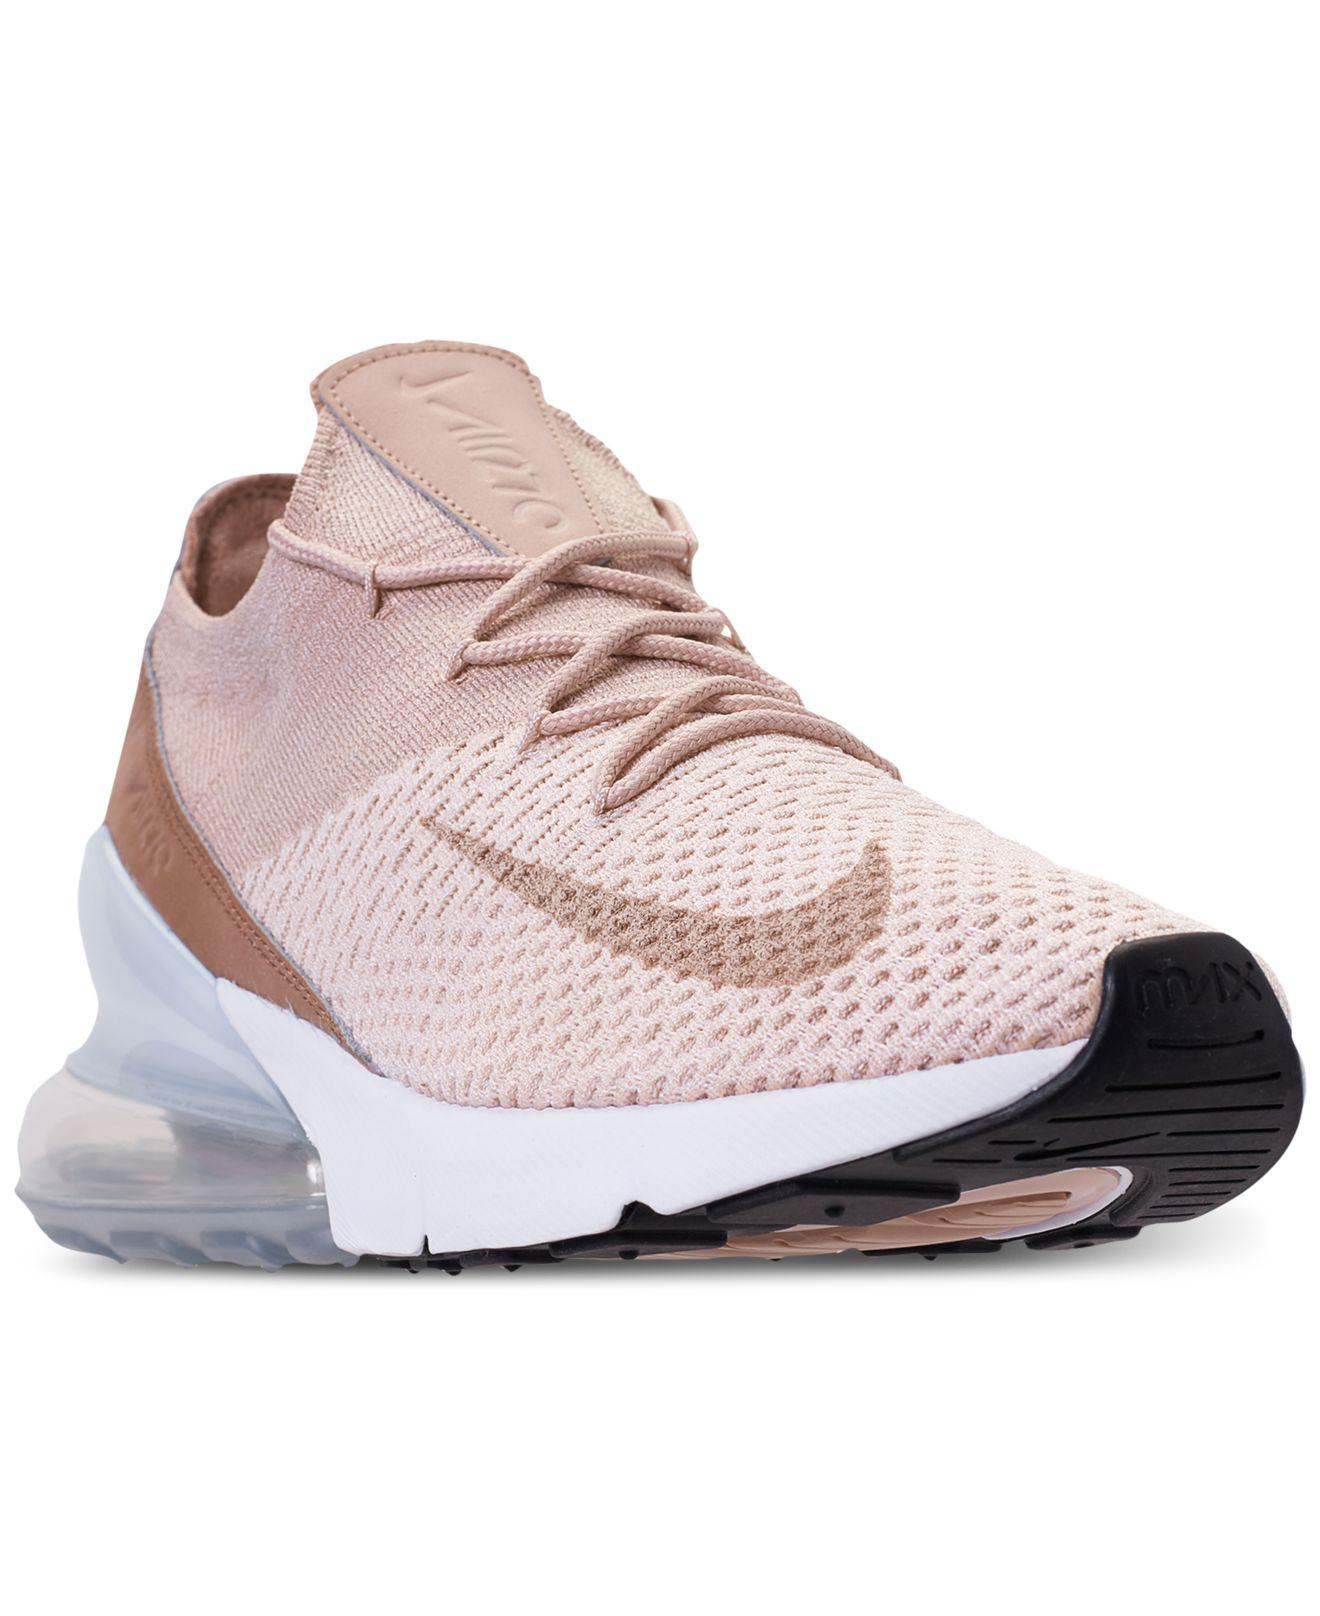 3058797e4 Nike Wmns Air Max 270 Flyknit Guava Ice/ Particle Beige in Pink - Lyst